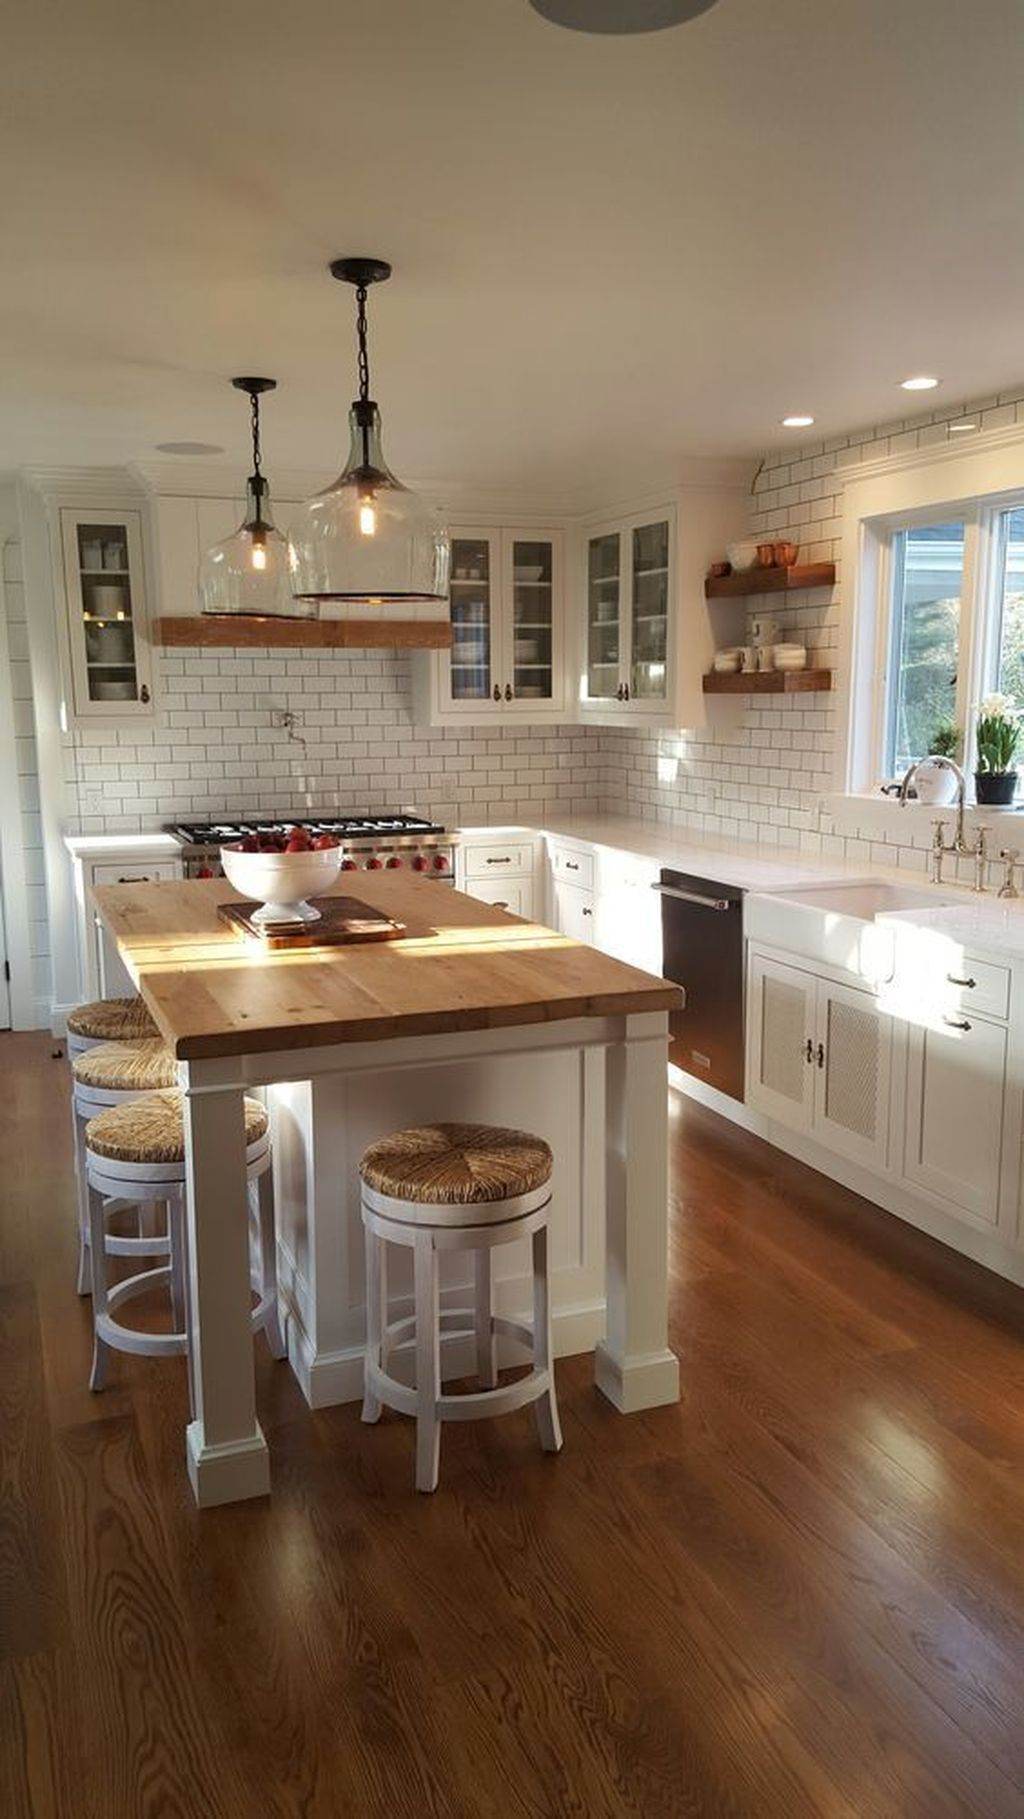 Find other ideas kitchen countertops remodeling on a - Inexpensive kitchen island ideas ...